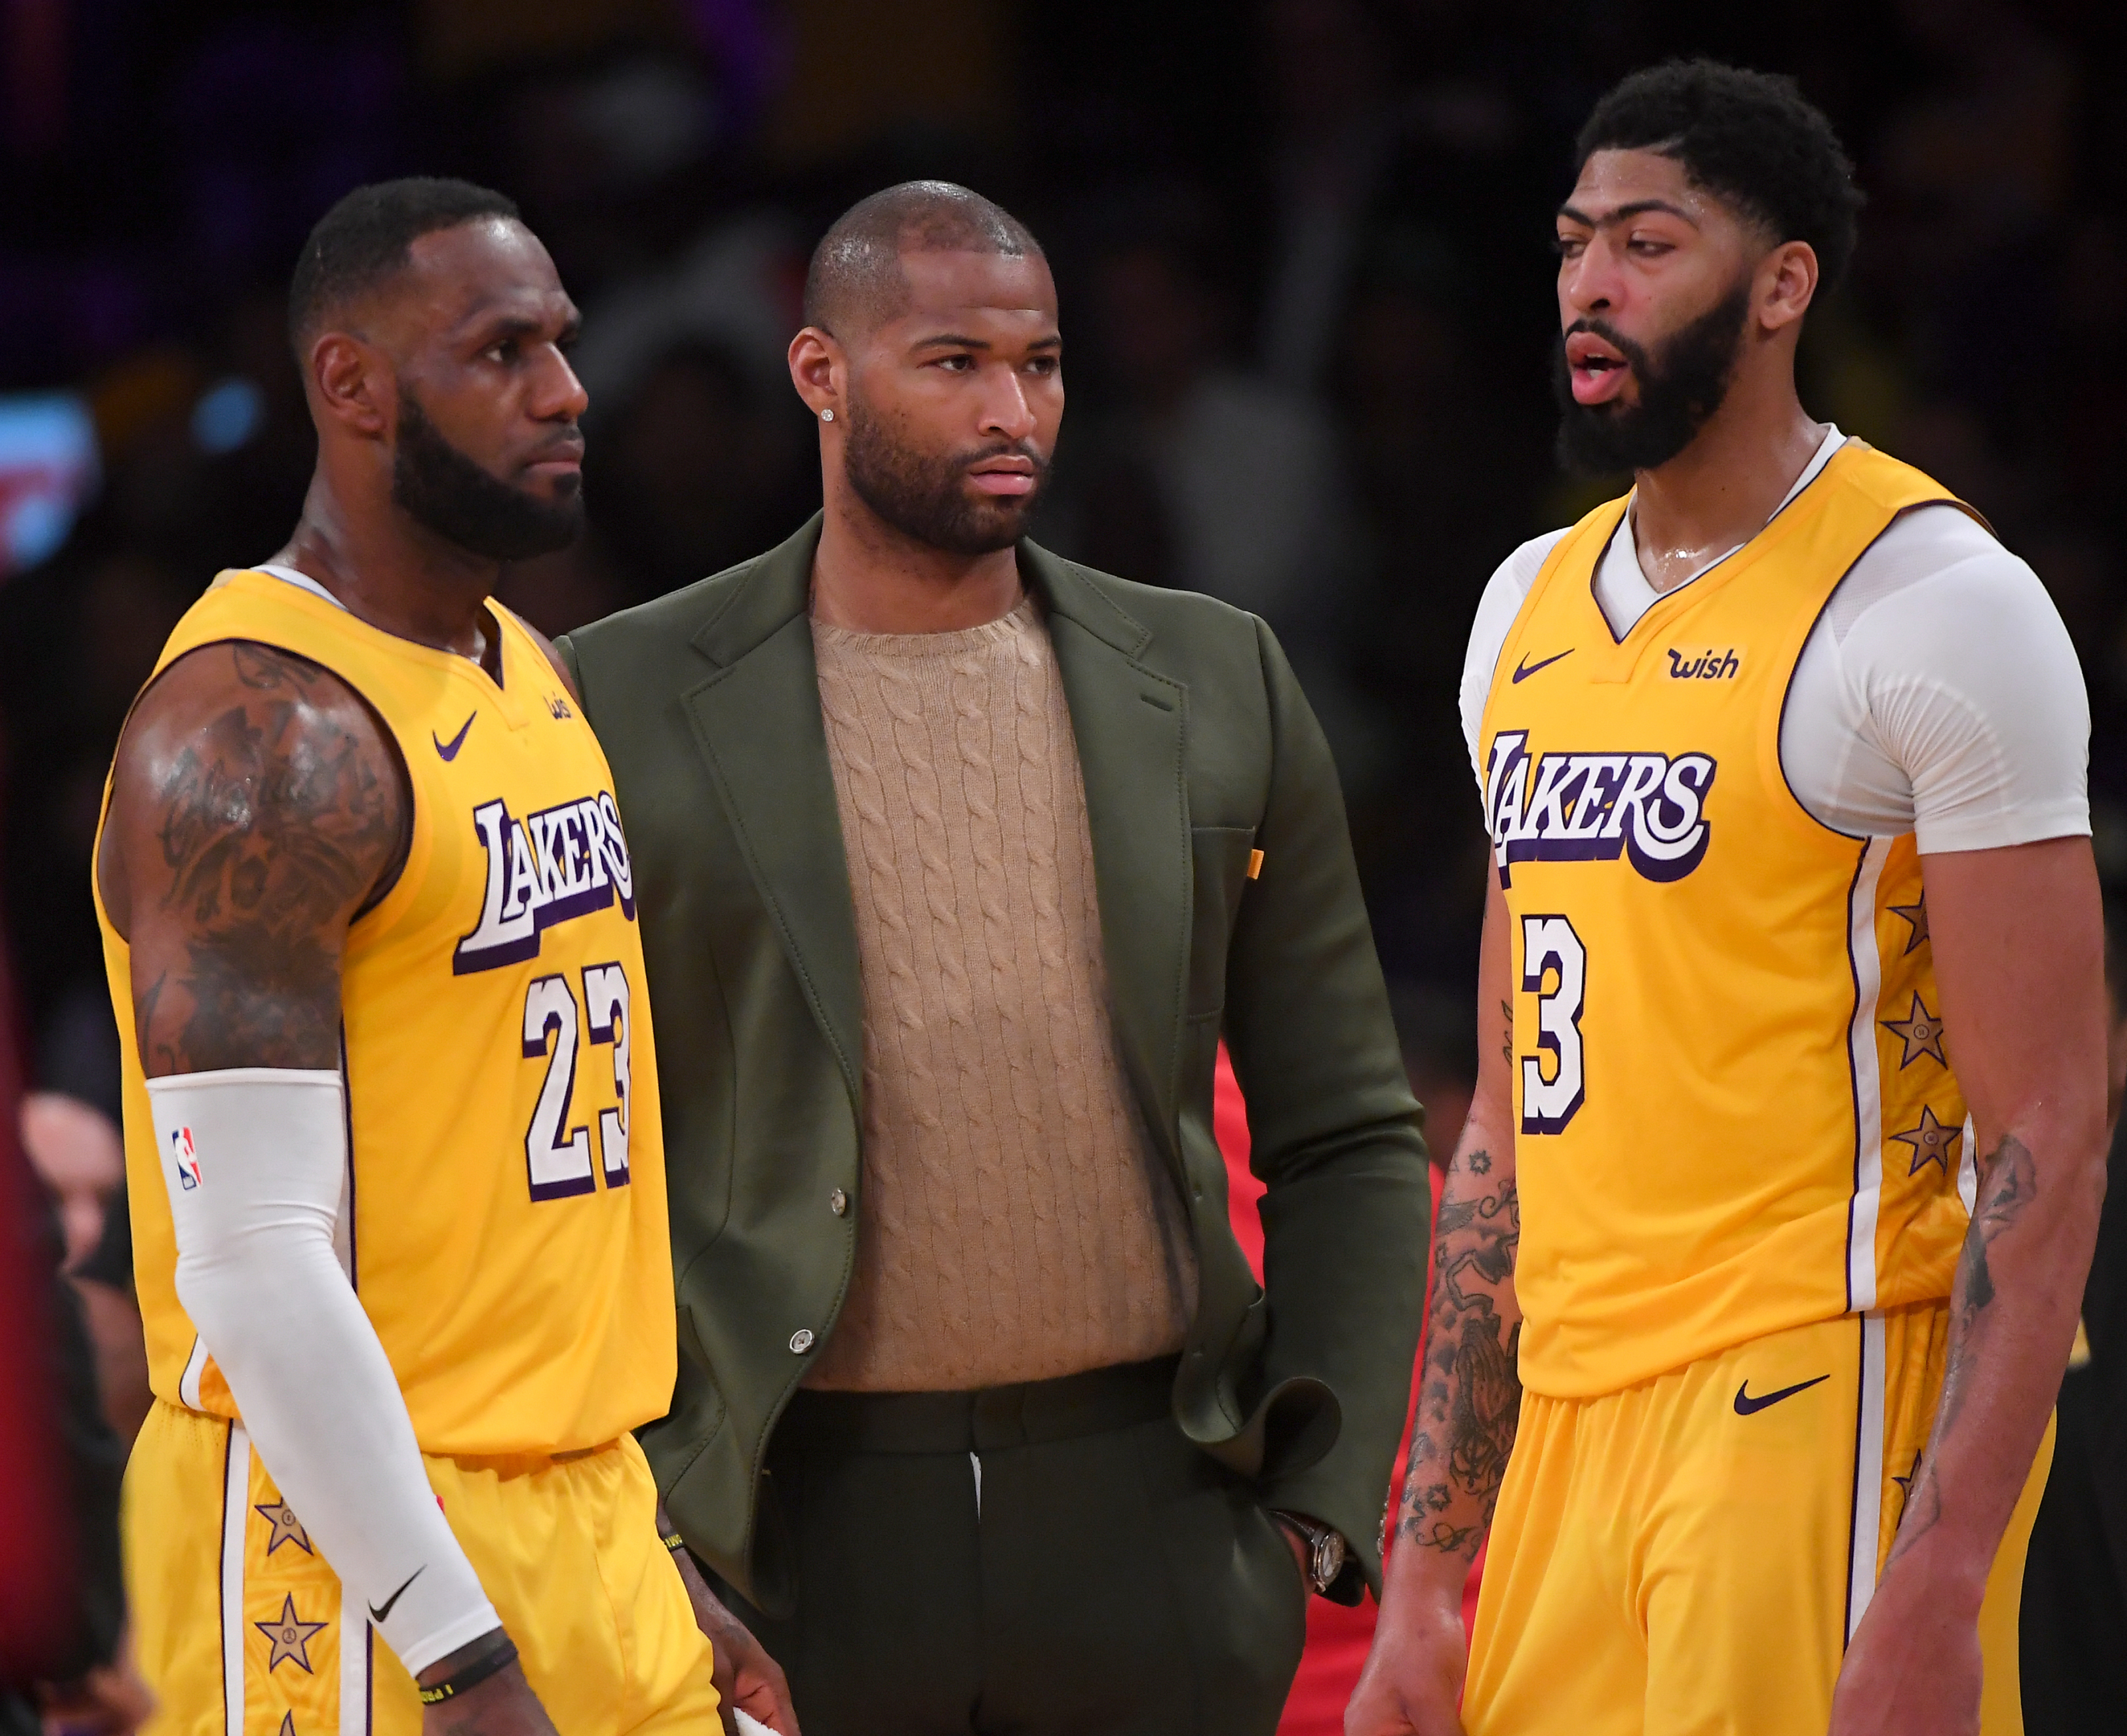 Los Angeles Lakers: DeMarcus Cousins contributes as the 15th man